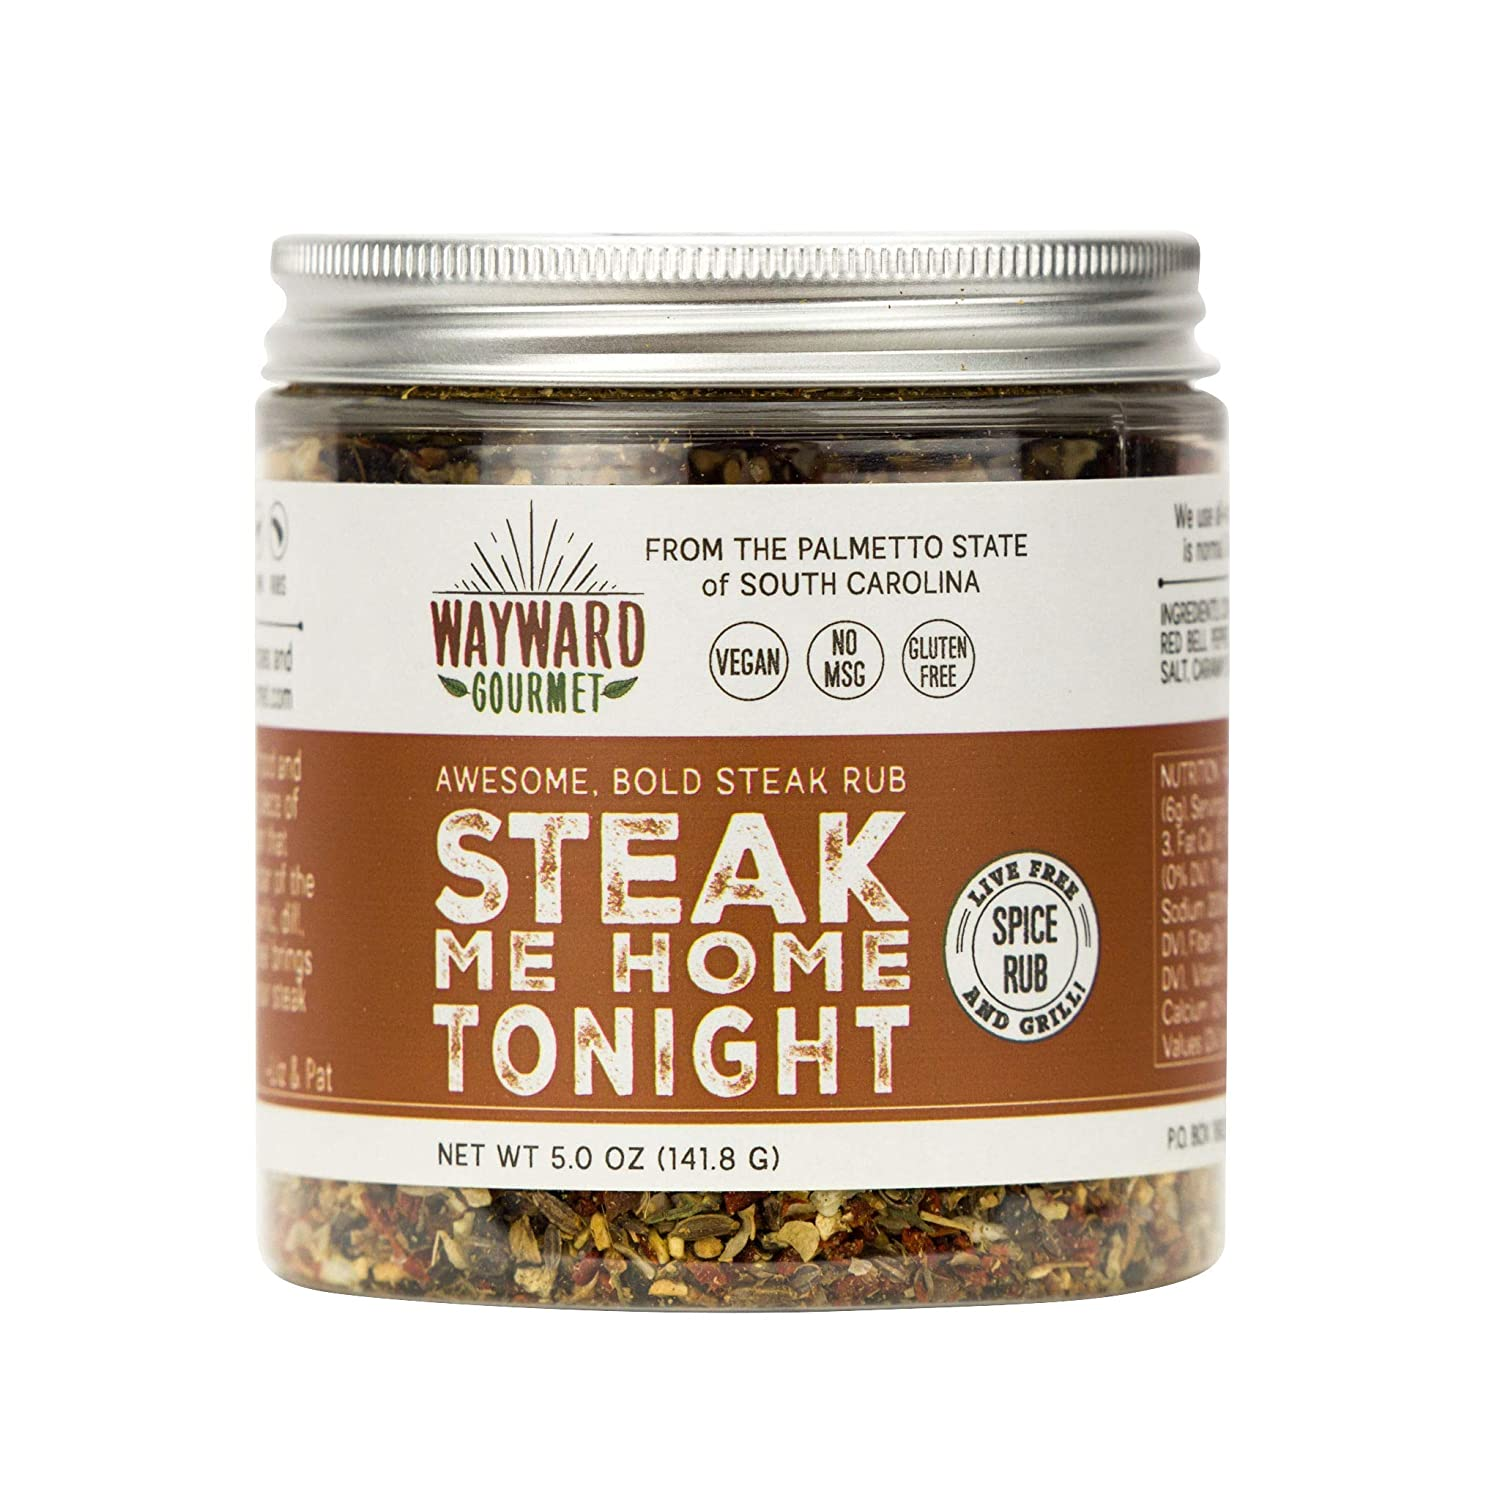 Steak Me Home Tonight - Dry Steak Rub by Wayward Gourmet - Bold Gourmet Steak Rub for Your Favorite Cut - All Natural Steak Seasoning - No MSG, No Gluten - Handmade in the USA for Best Quality Flavor